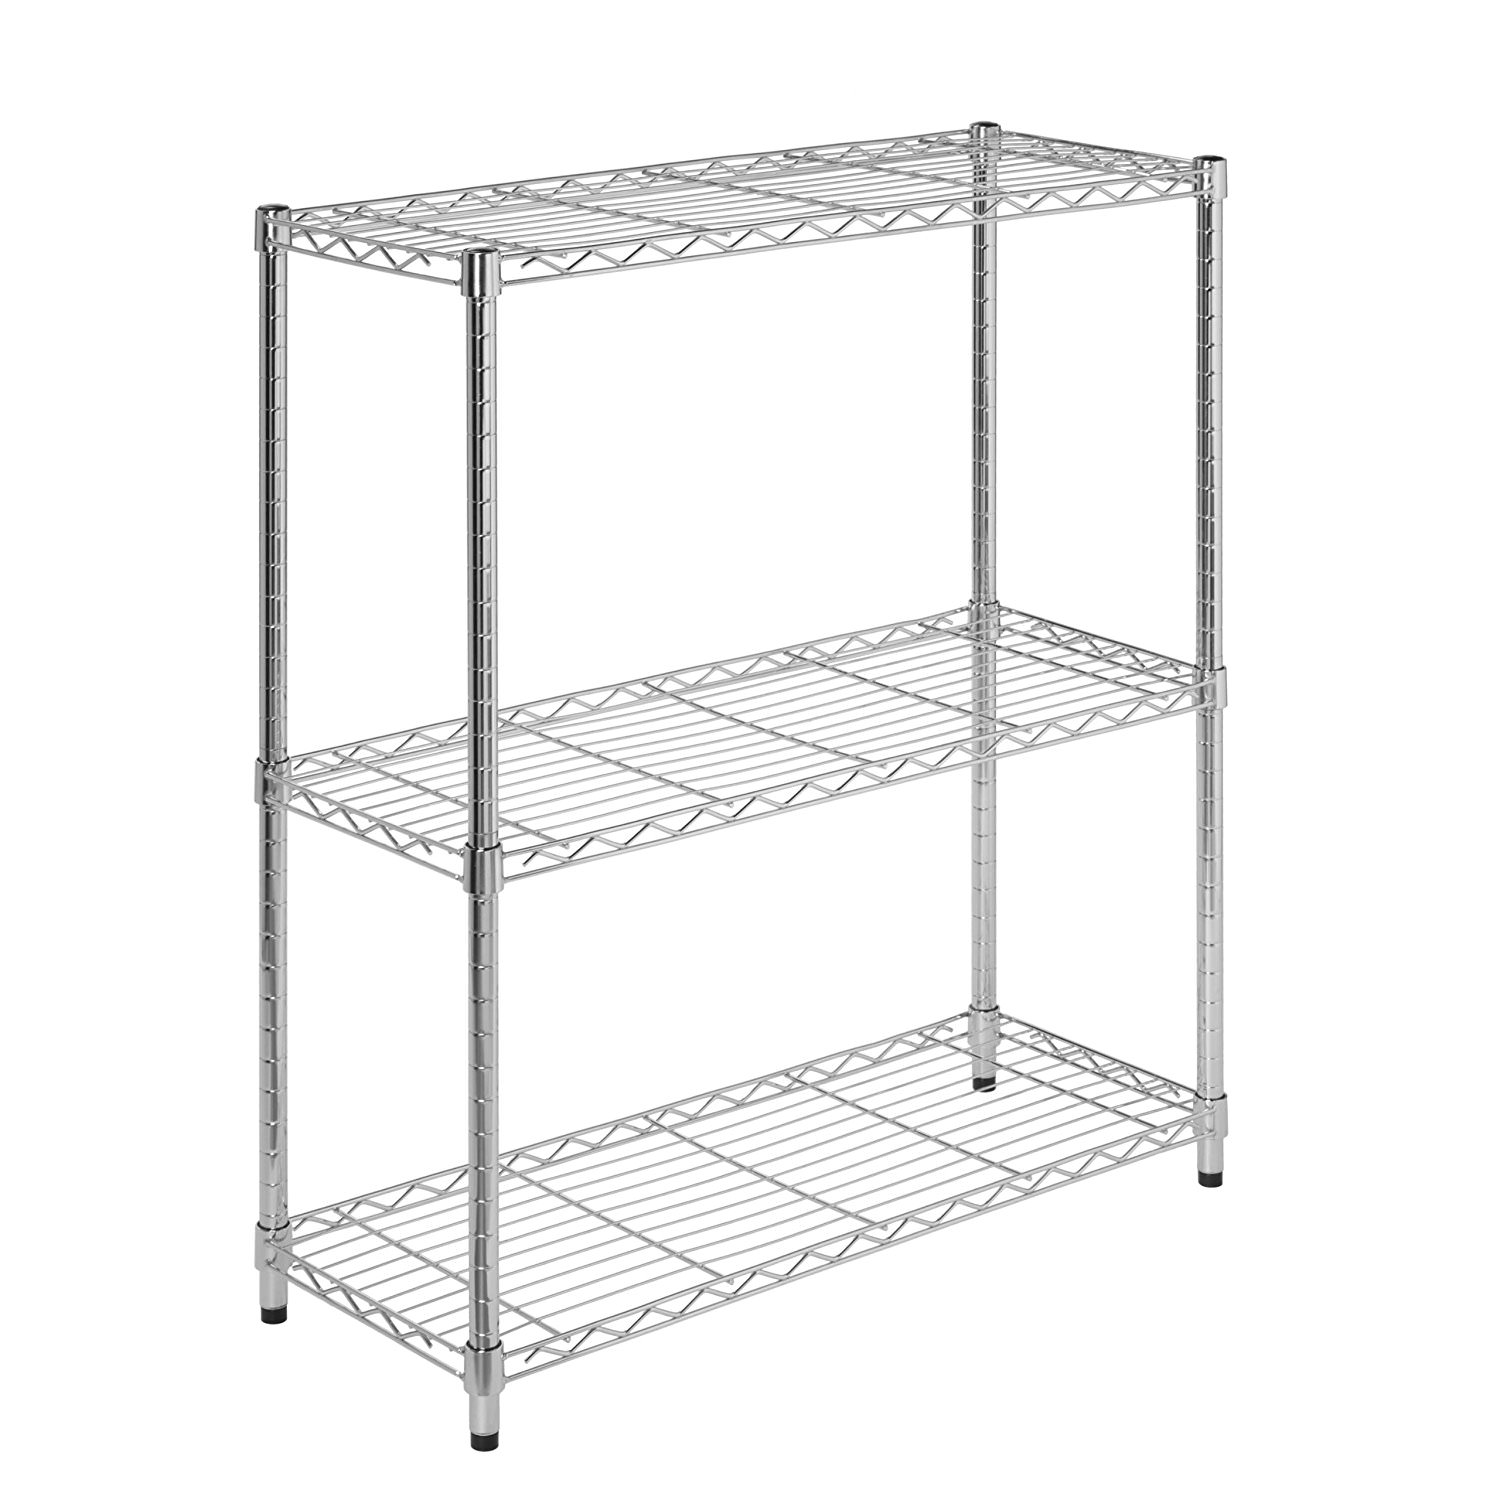 Honey Can Do 3-Shelf Steel Storage Shelving Unit, Chrome